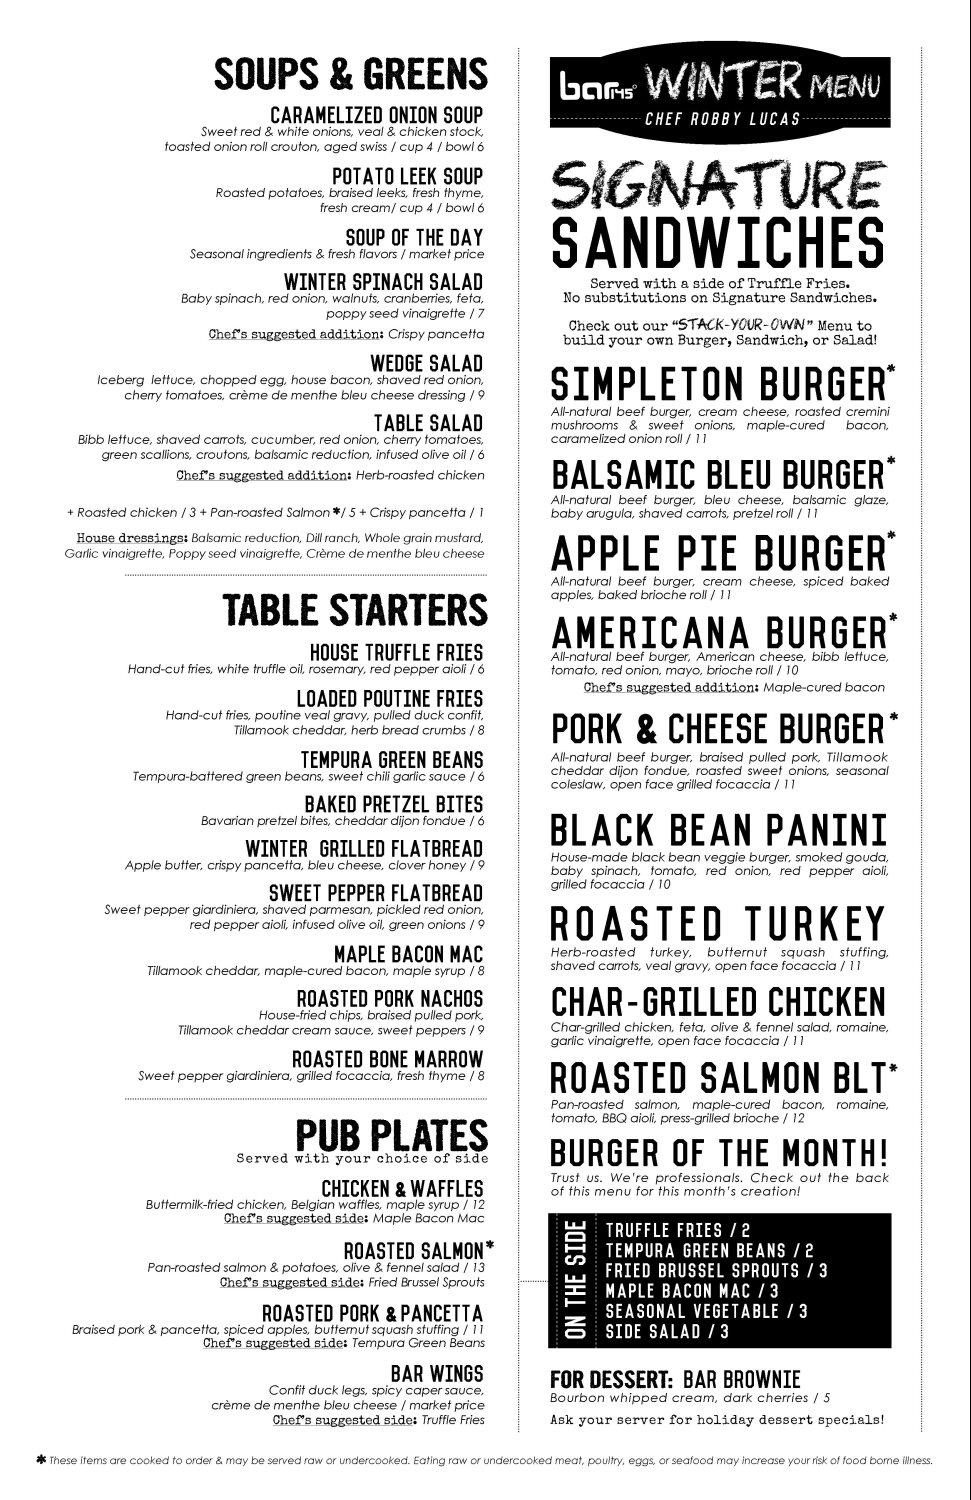 Fall & Winter 2014-15 FOOD MENU 2.jpg